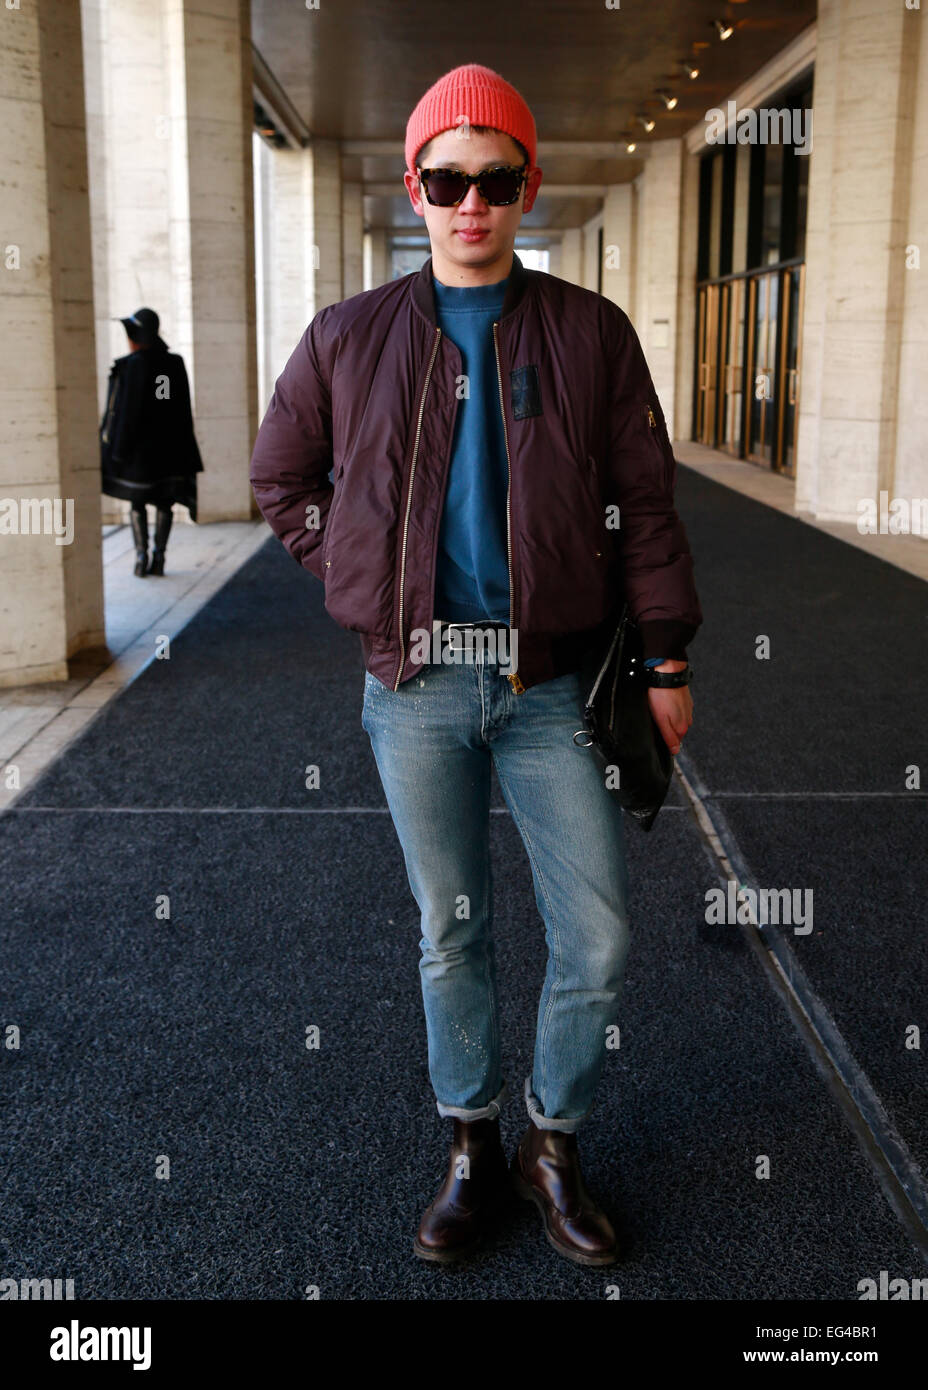 Darle arriving at the Mongol runway show in New York City - Feb 13, 2015 - Photo: Runway Manhattan/Charles Eshelman/picture Stock Photo